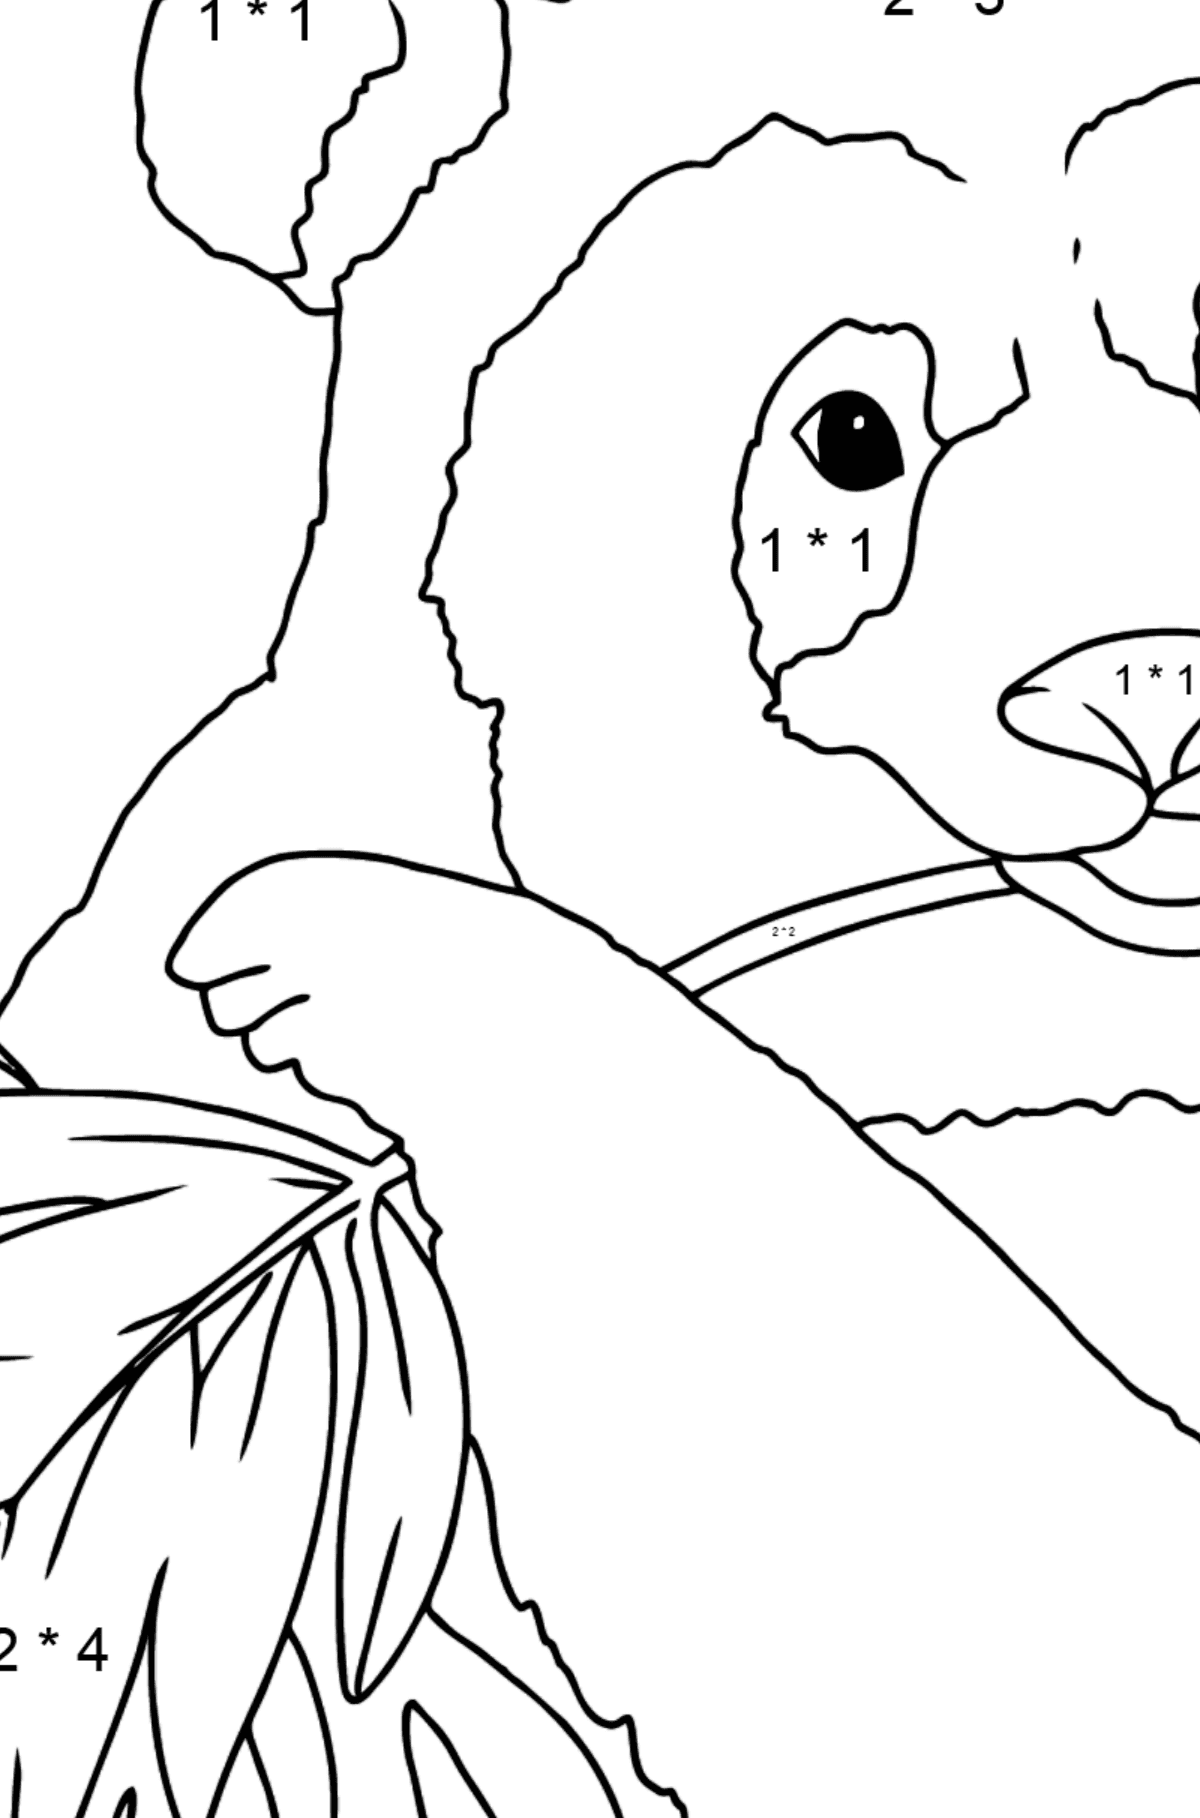 Coloring Page  - A Panda is Eating Leaves - Math Coloring - Multiplication for Kids